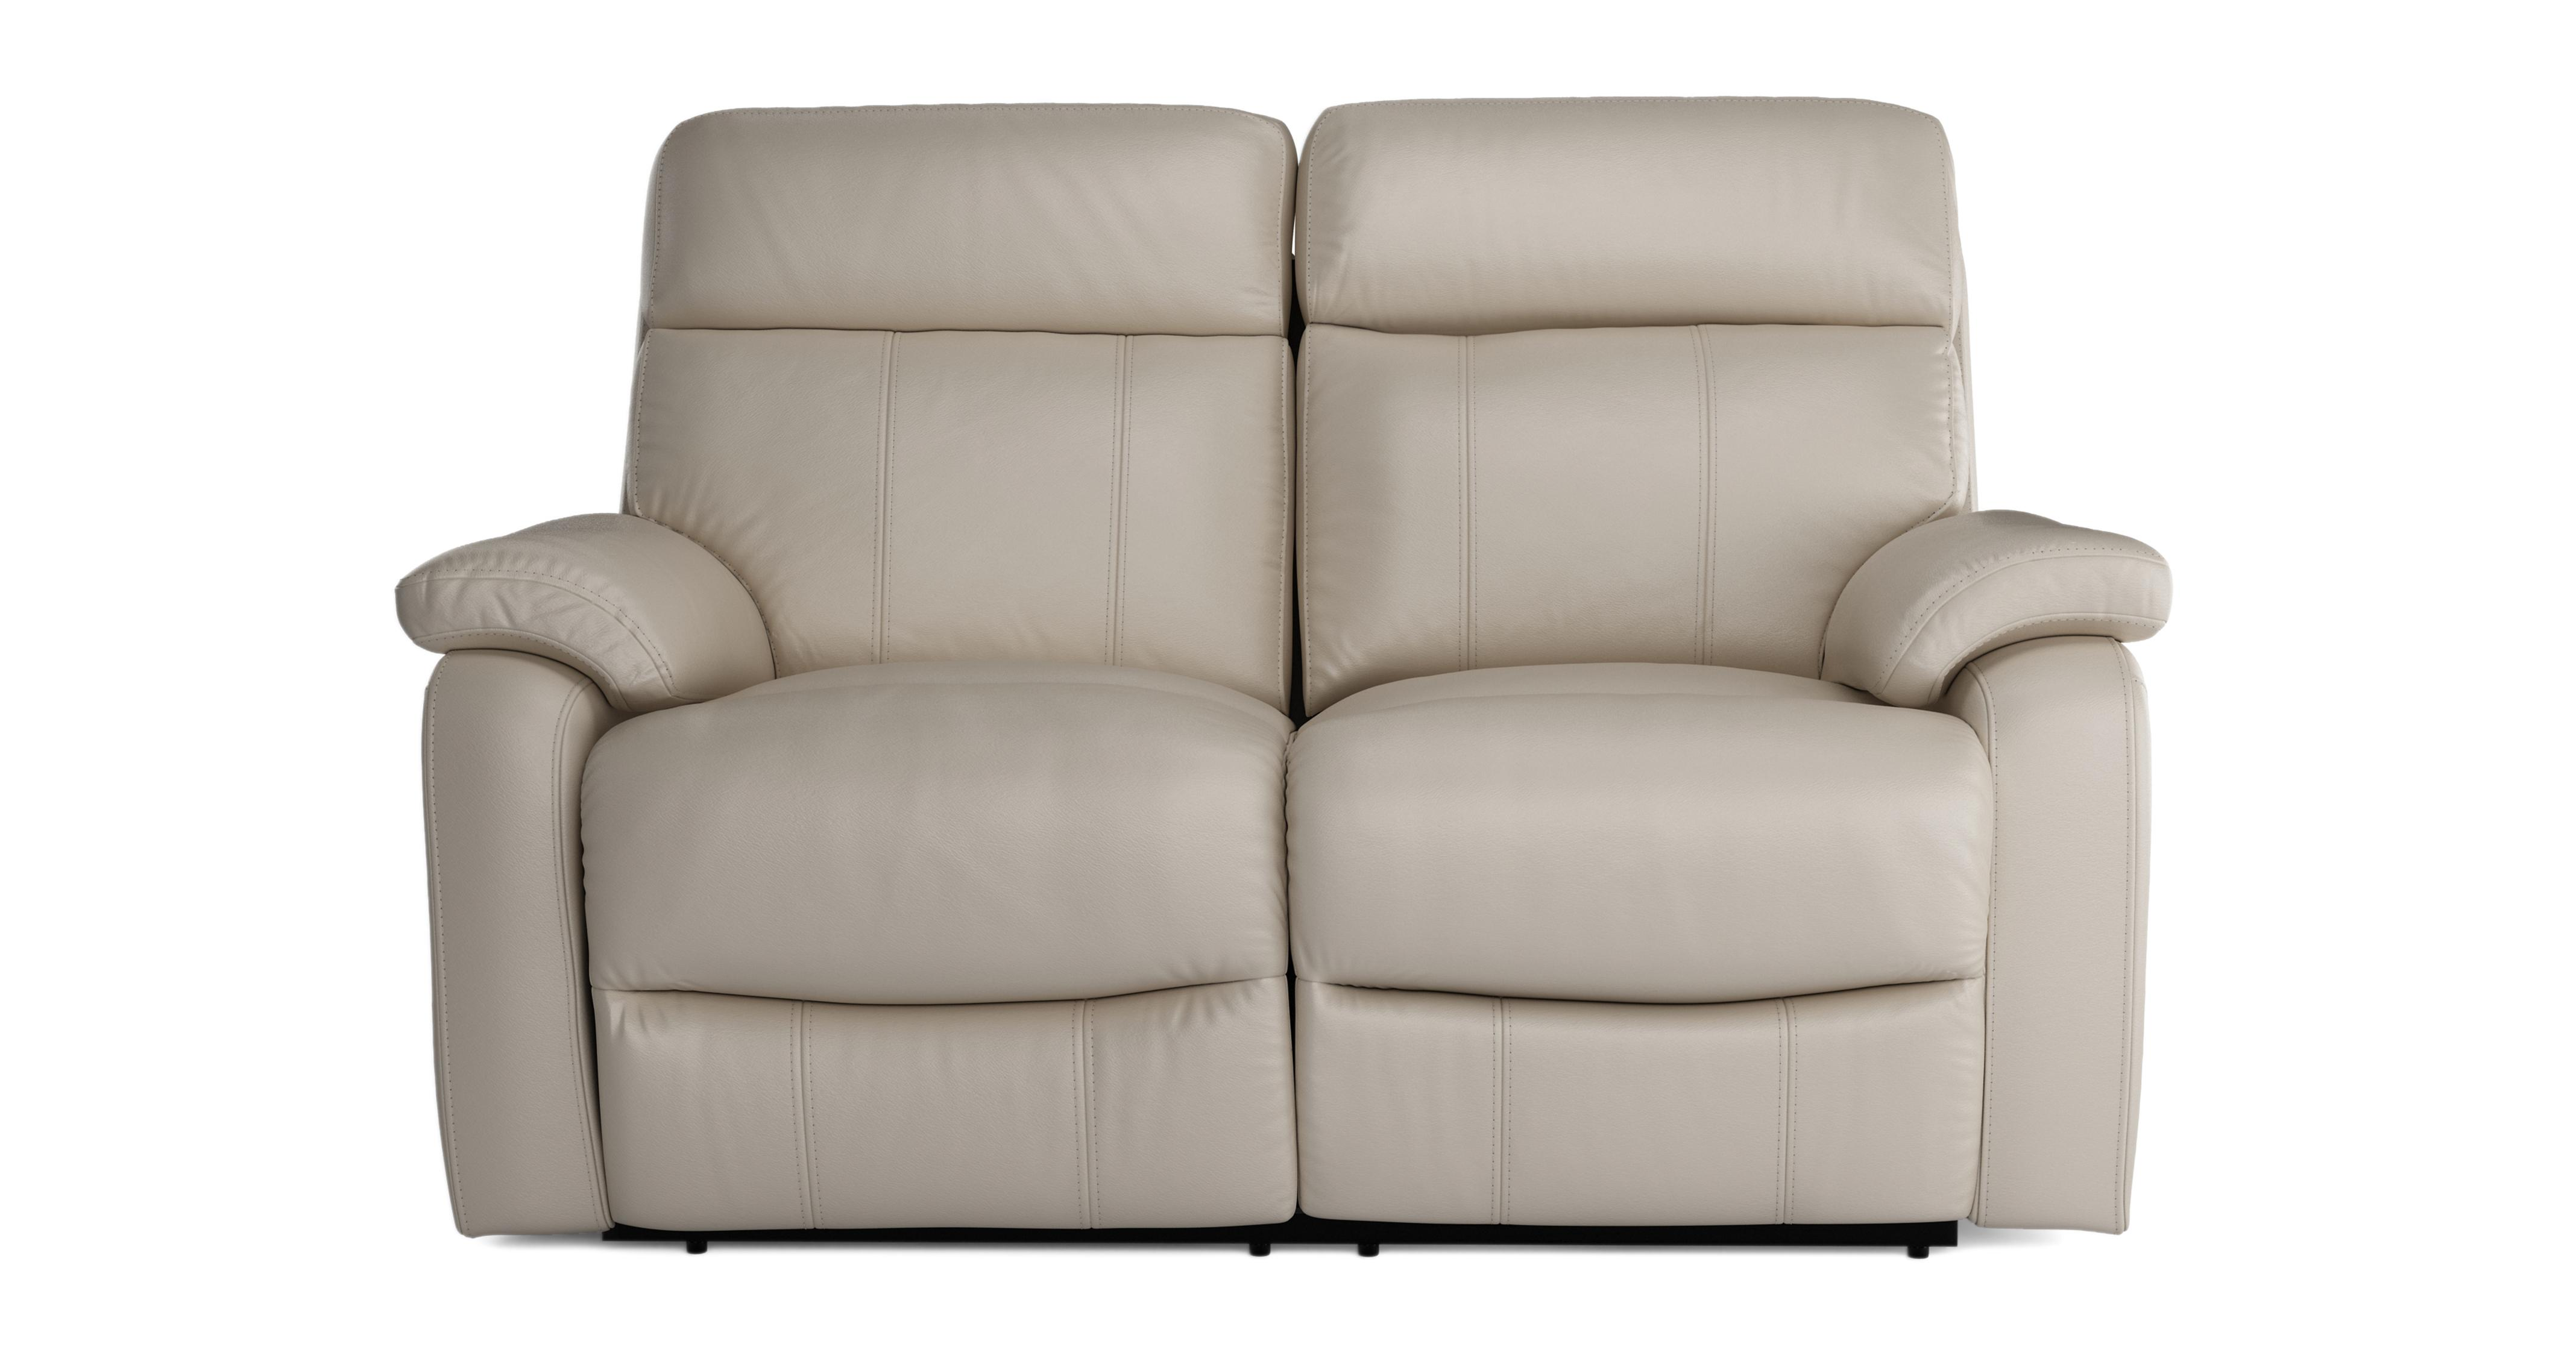 New Navona: 2 Seater Power Recliner with Headrests